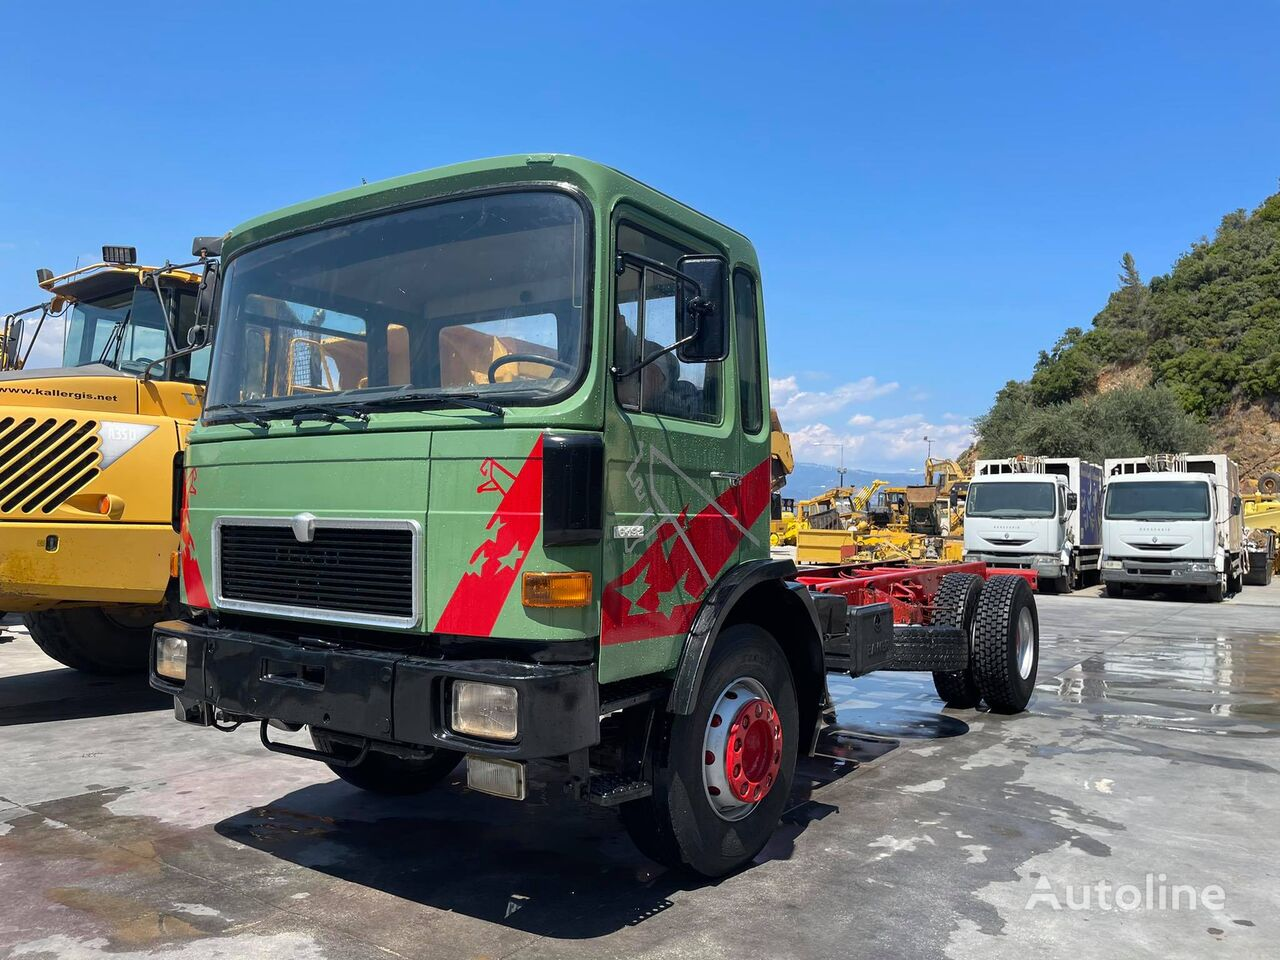 MAN 16.192 chassis truck